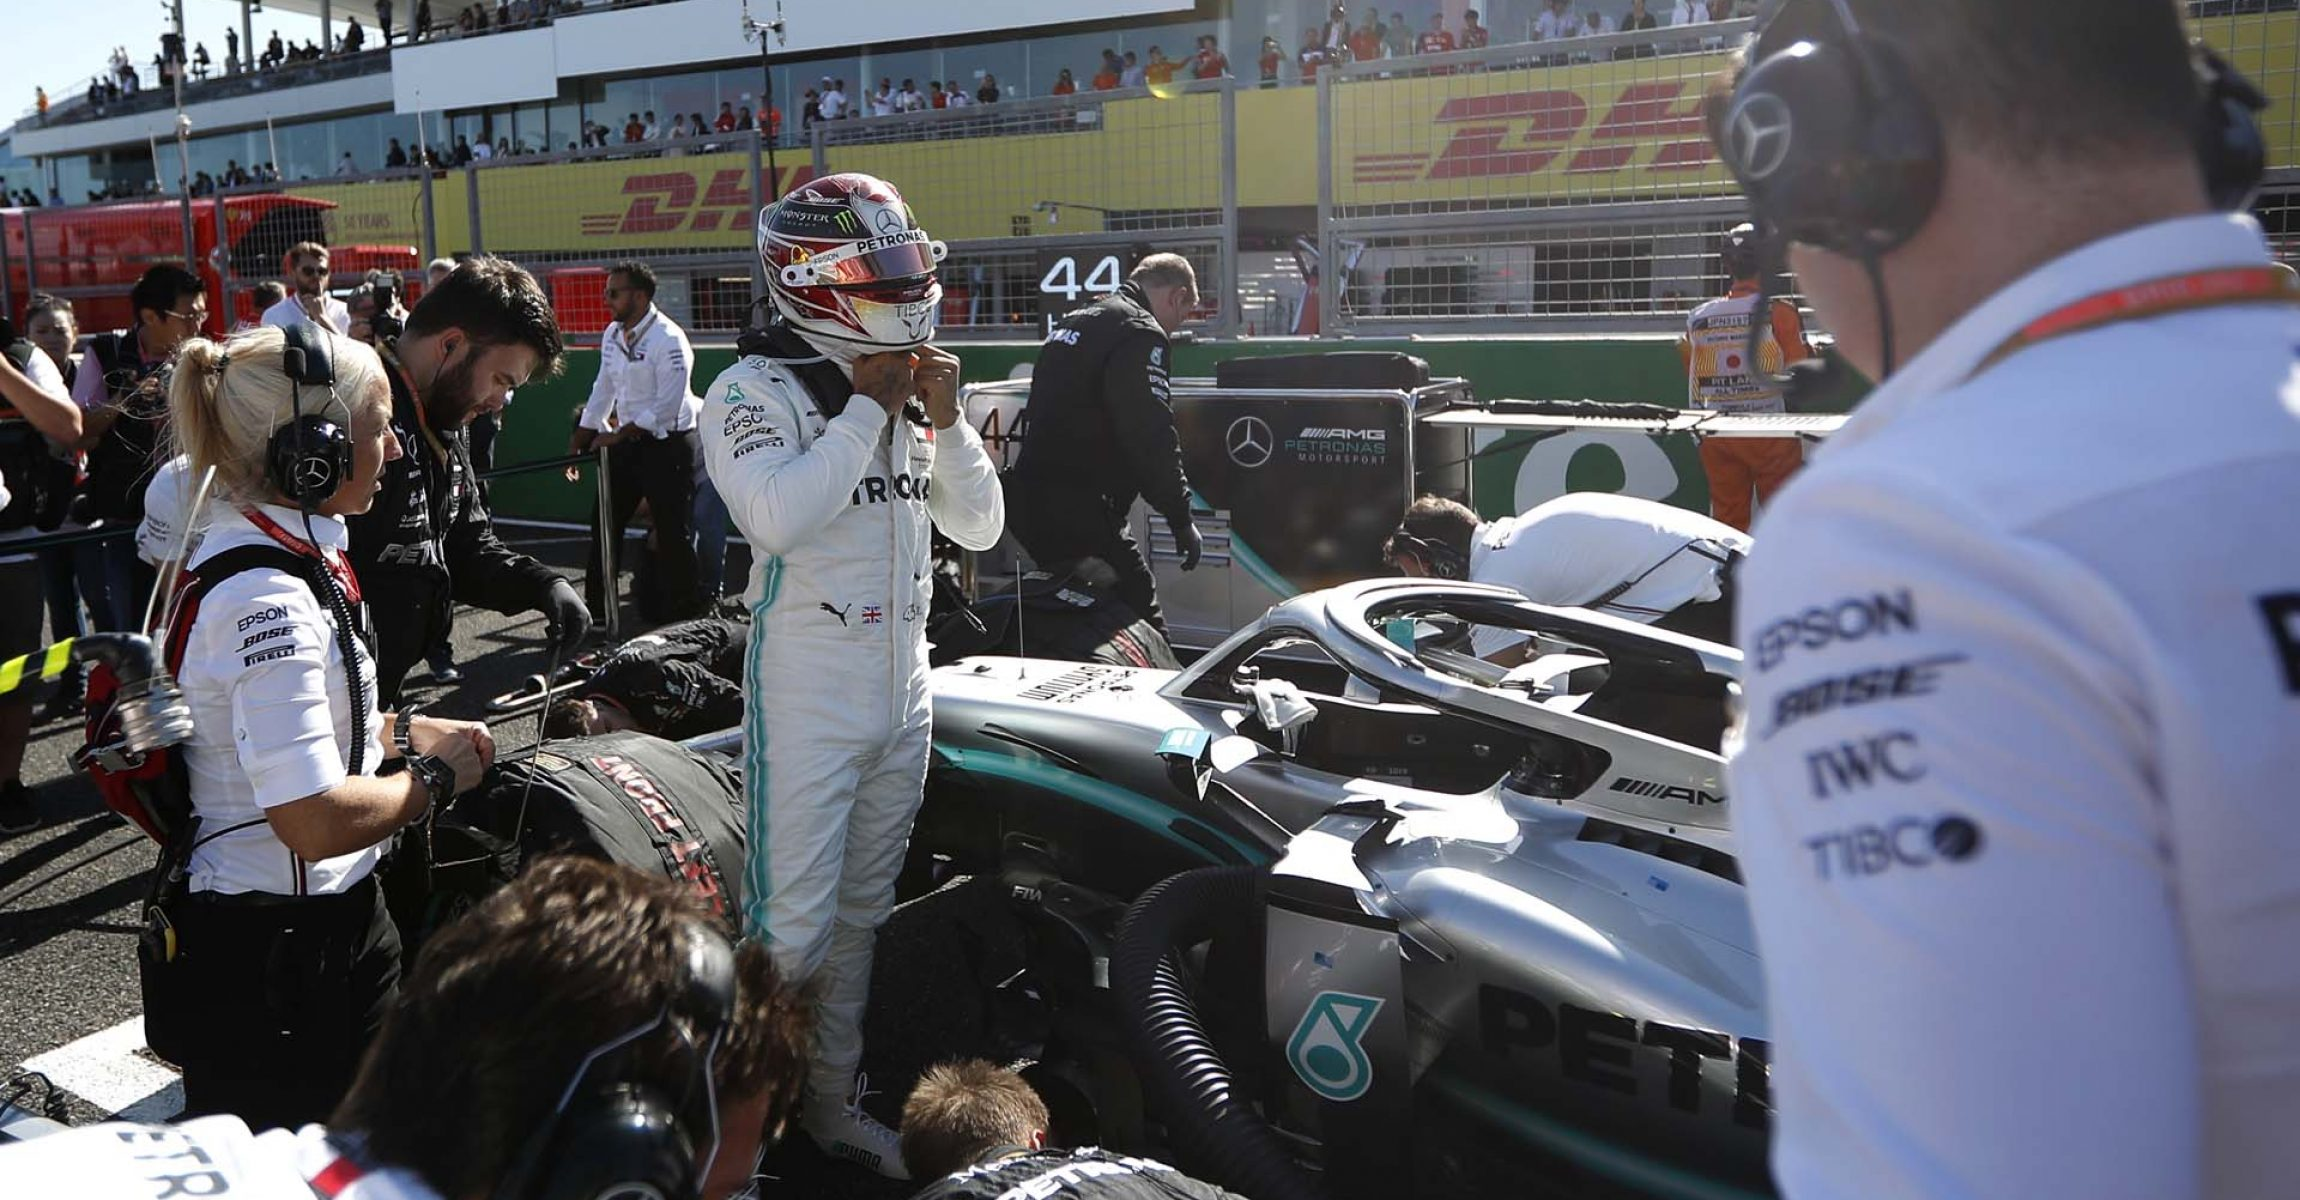 Formula One F1 - Japanese Grand Prix - Suzuka Circuit, Suzuka, Japan - October 13, 2019. Mercedes' Lewis Hamilton on the grid before the race. REUTERS/Kim Hong-Ji